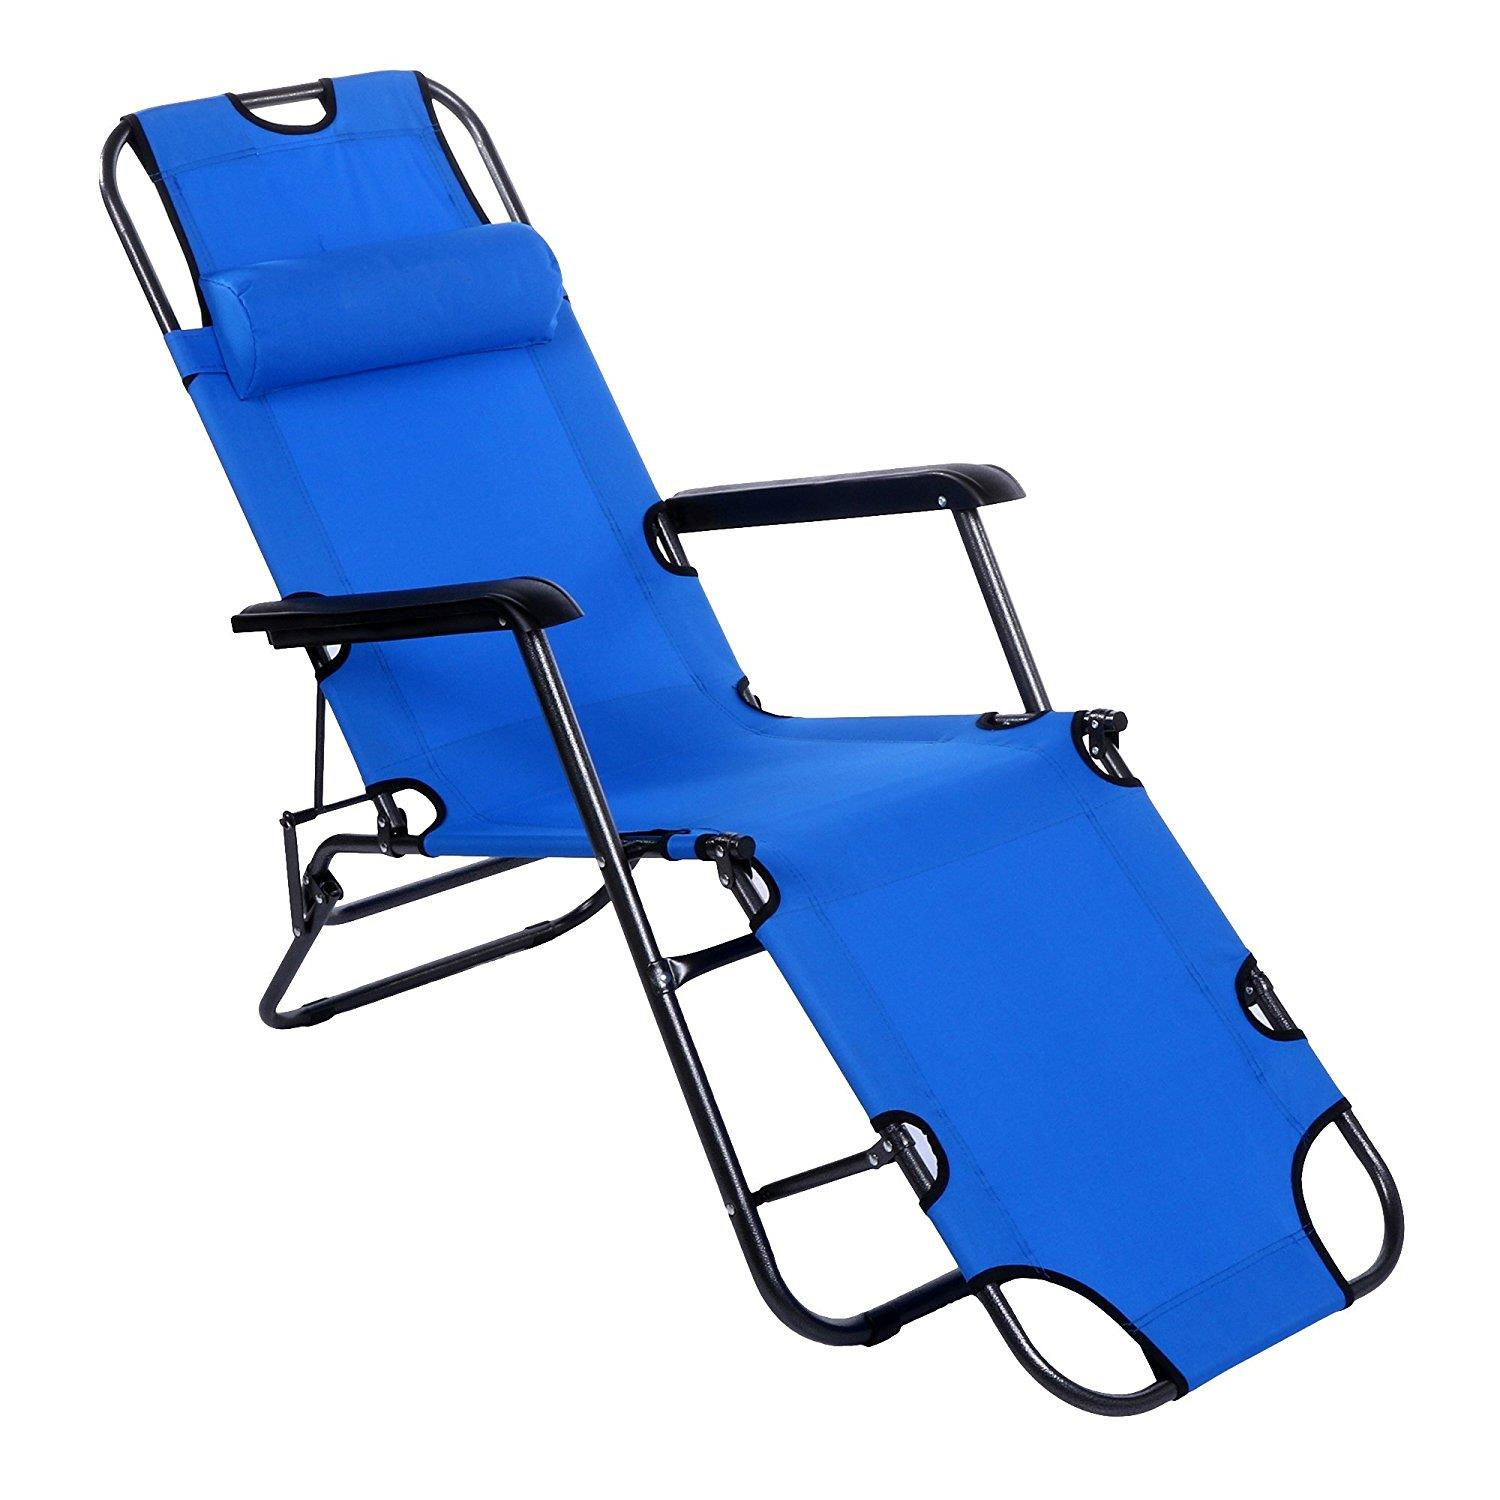 Ktaxon Outdoor Folding Lounge Chaise Portable Beach Recliner Patio Chair,  Garden Camping Pool Yard Lawn